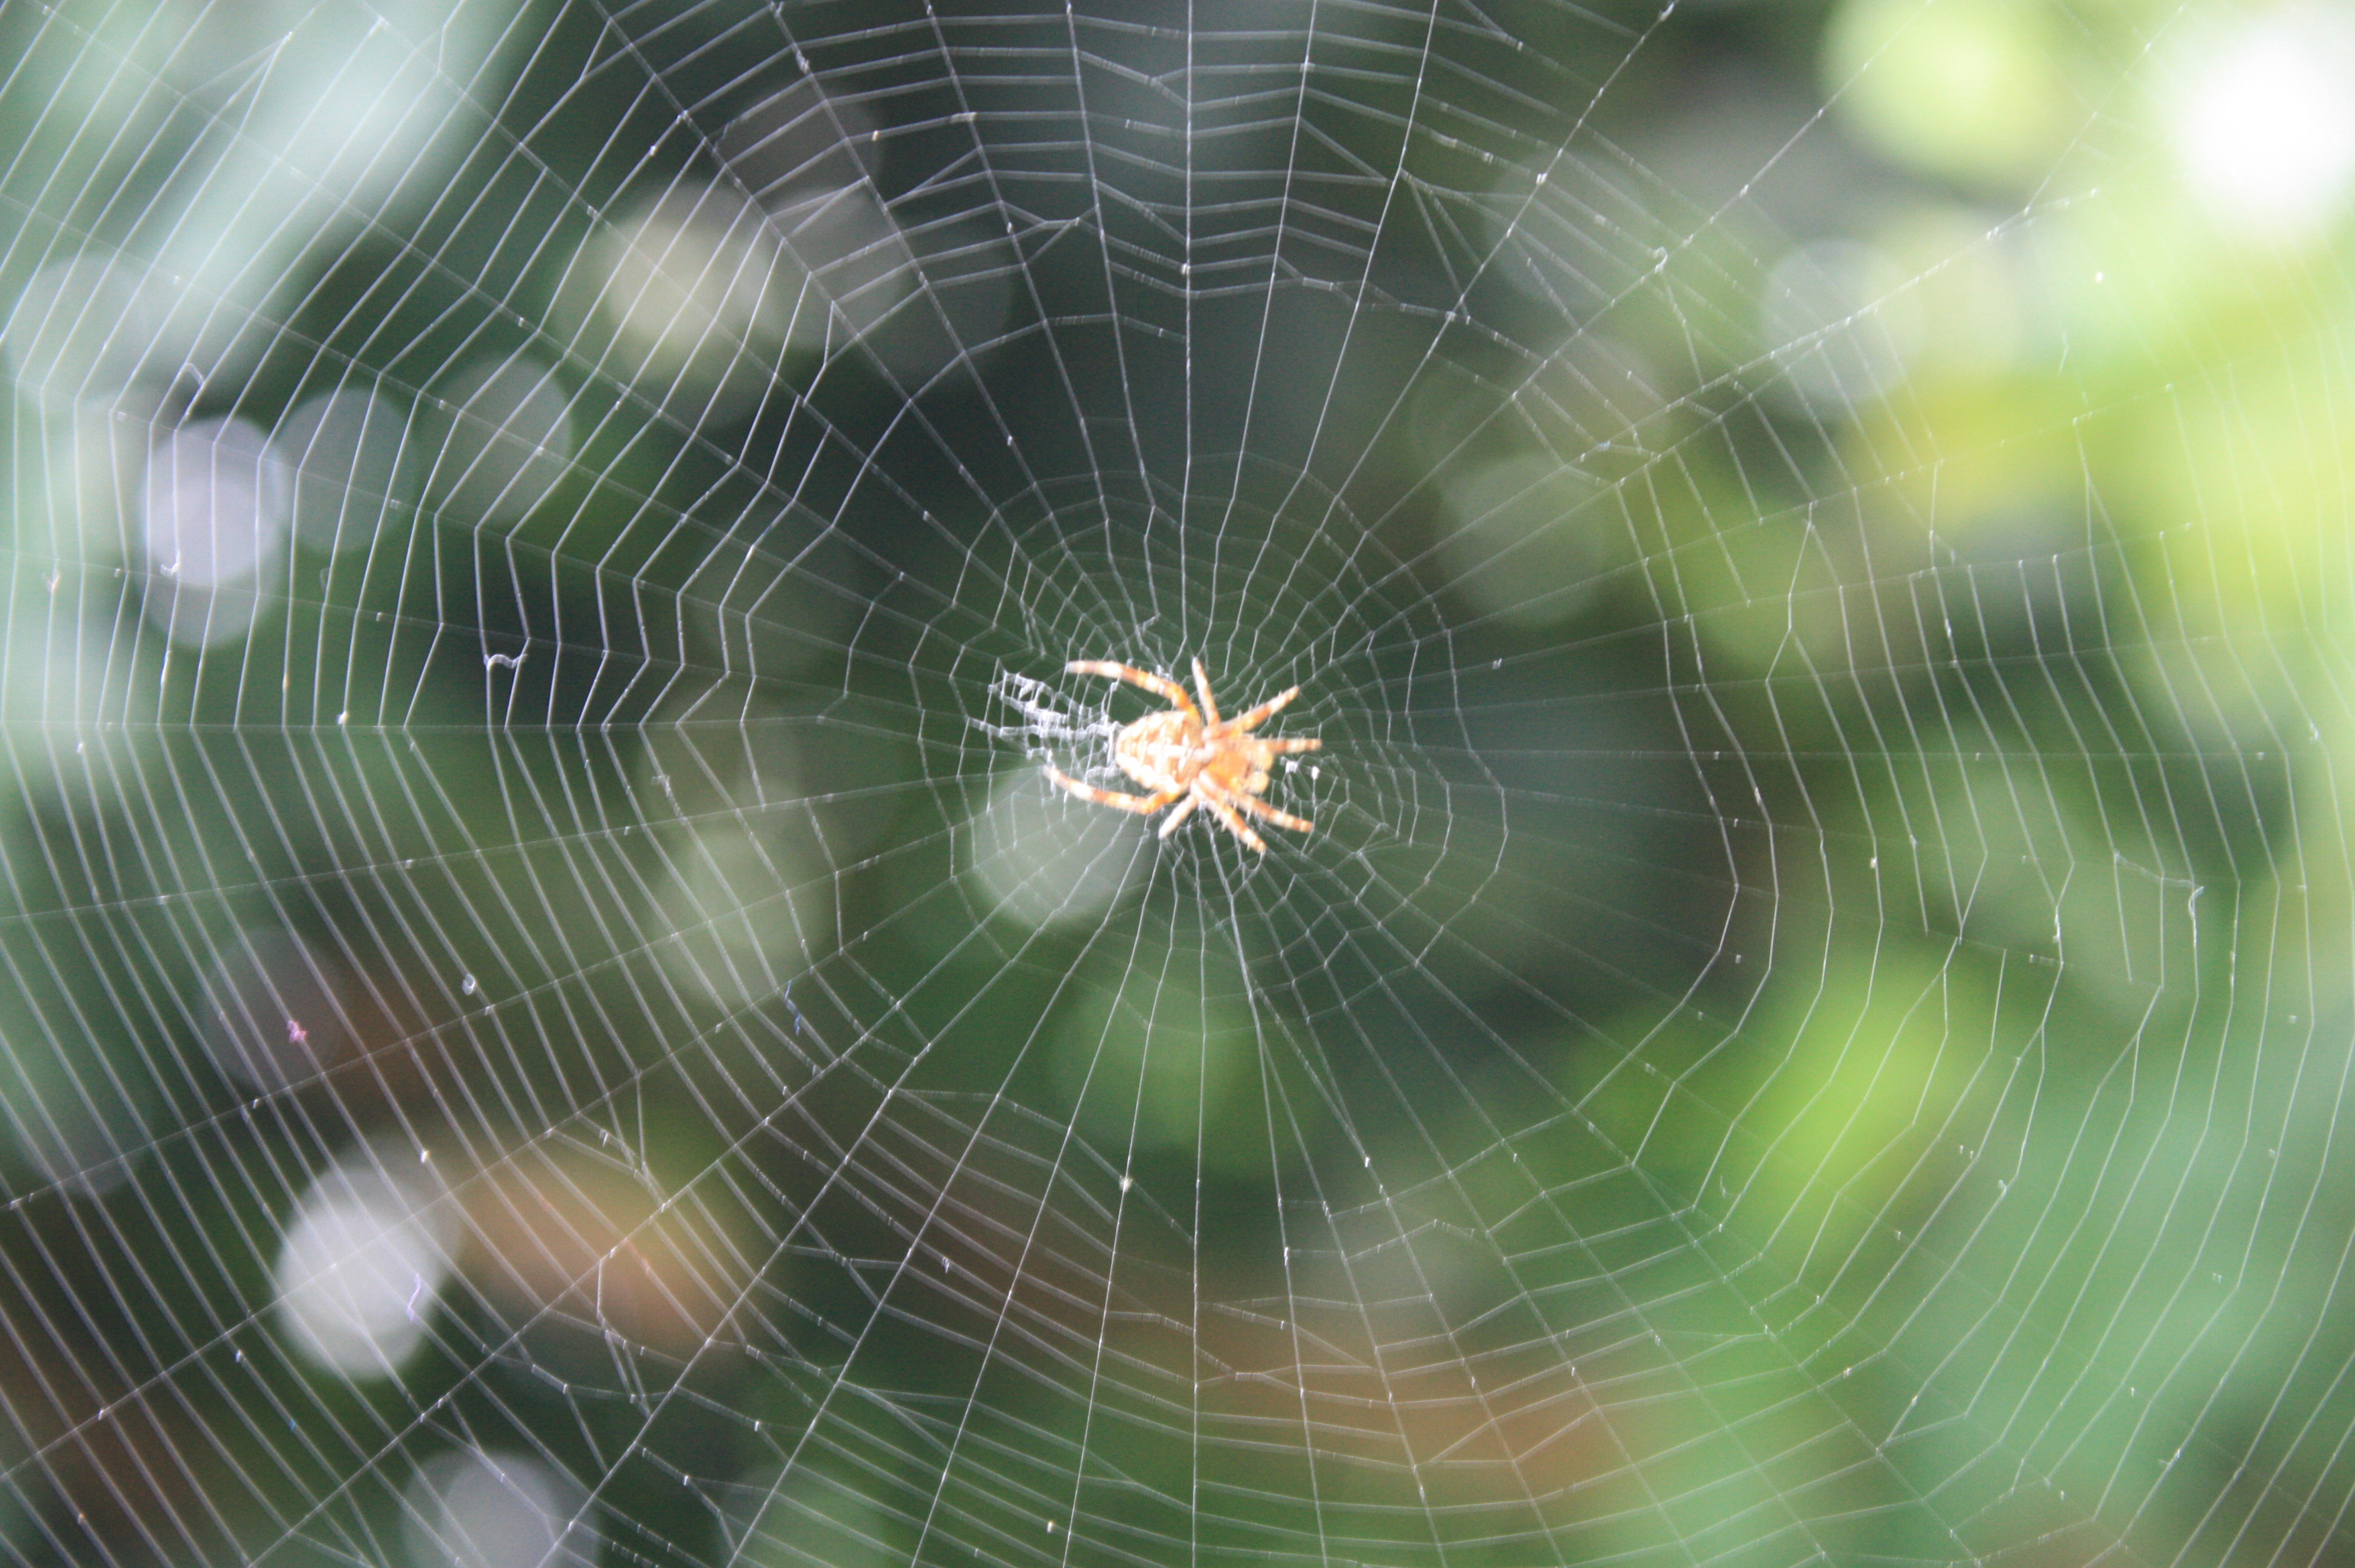 Small spider in a circular web